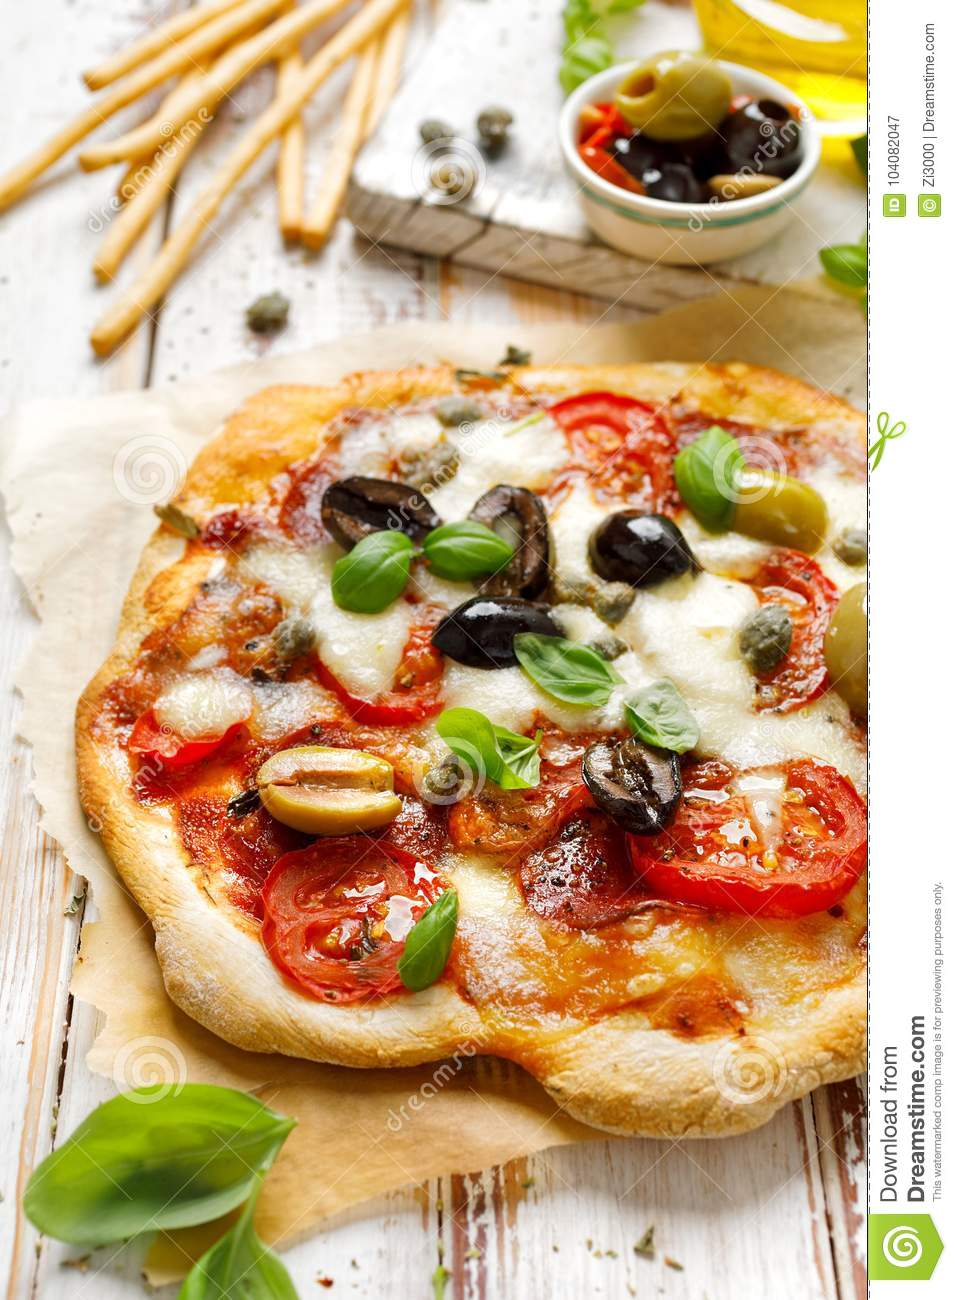 Homemade pizza with tomatoes, olives, salami, mozzarella cheese and fresh basil on a wooden rustic table